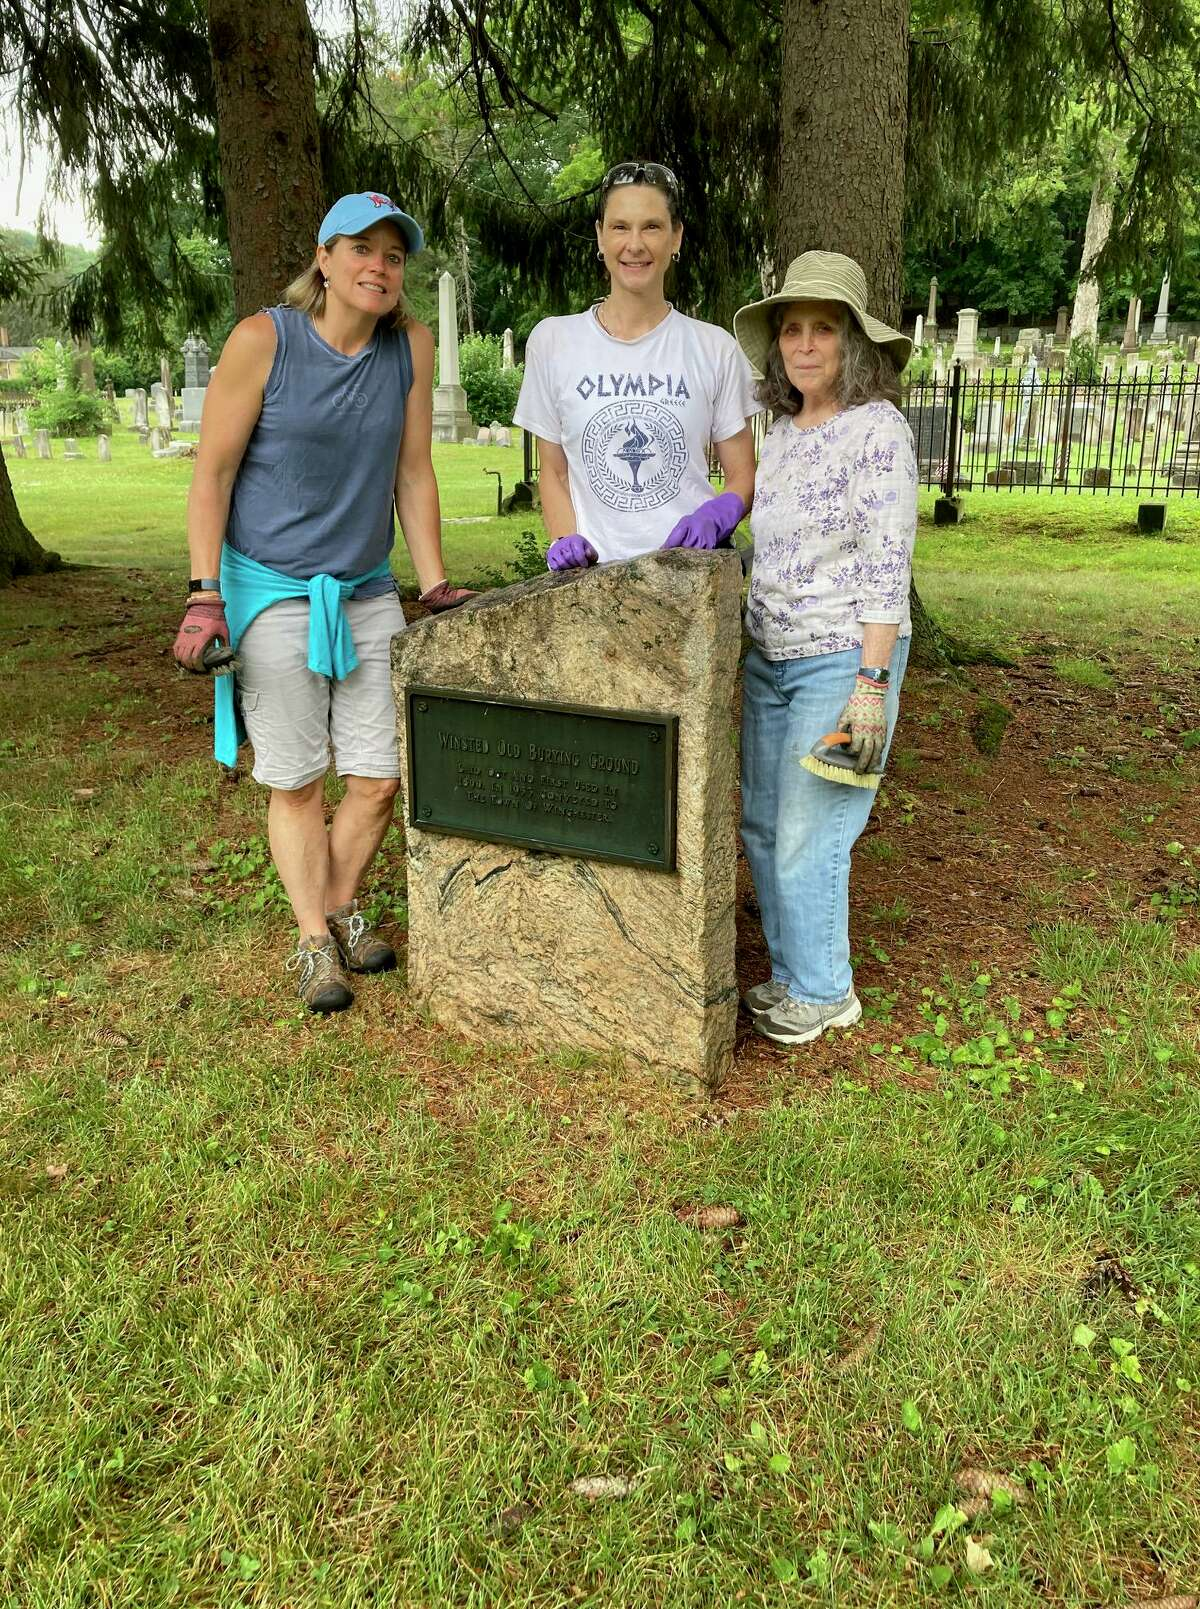 Members of the Brooks - Green Woods Chapter of the Daughters of the American Revolution spent a day cleaning the Winchester Revolutionary War Memorial historical marker, along with the Winsted Old Burying Ground marker, both located in Center Cemetery.